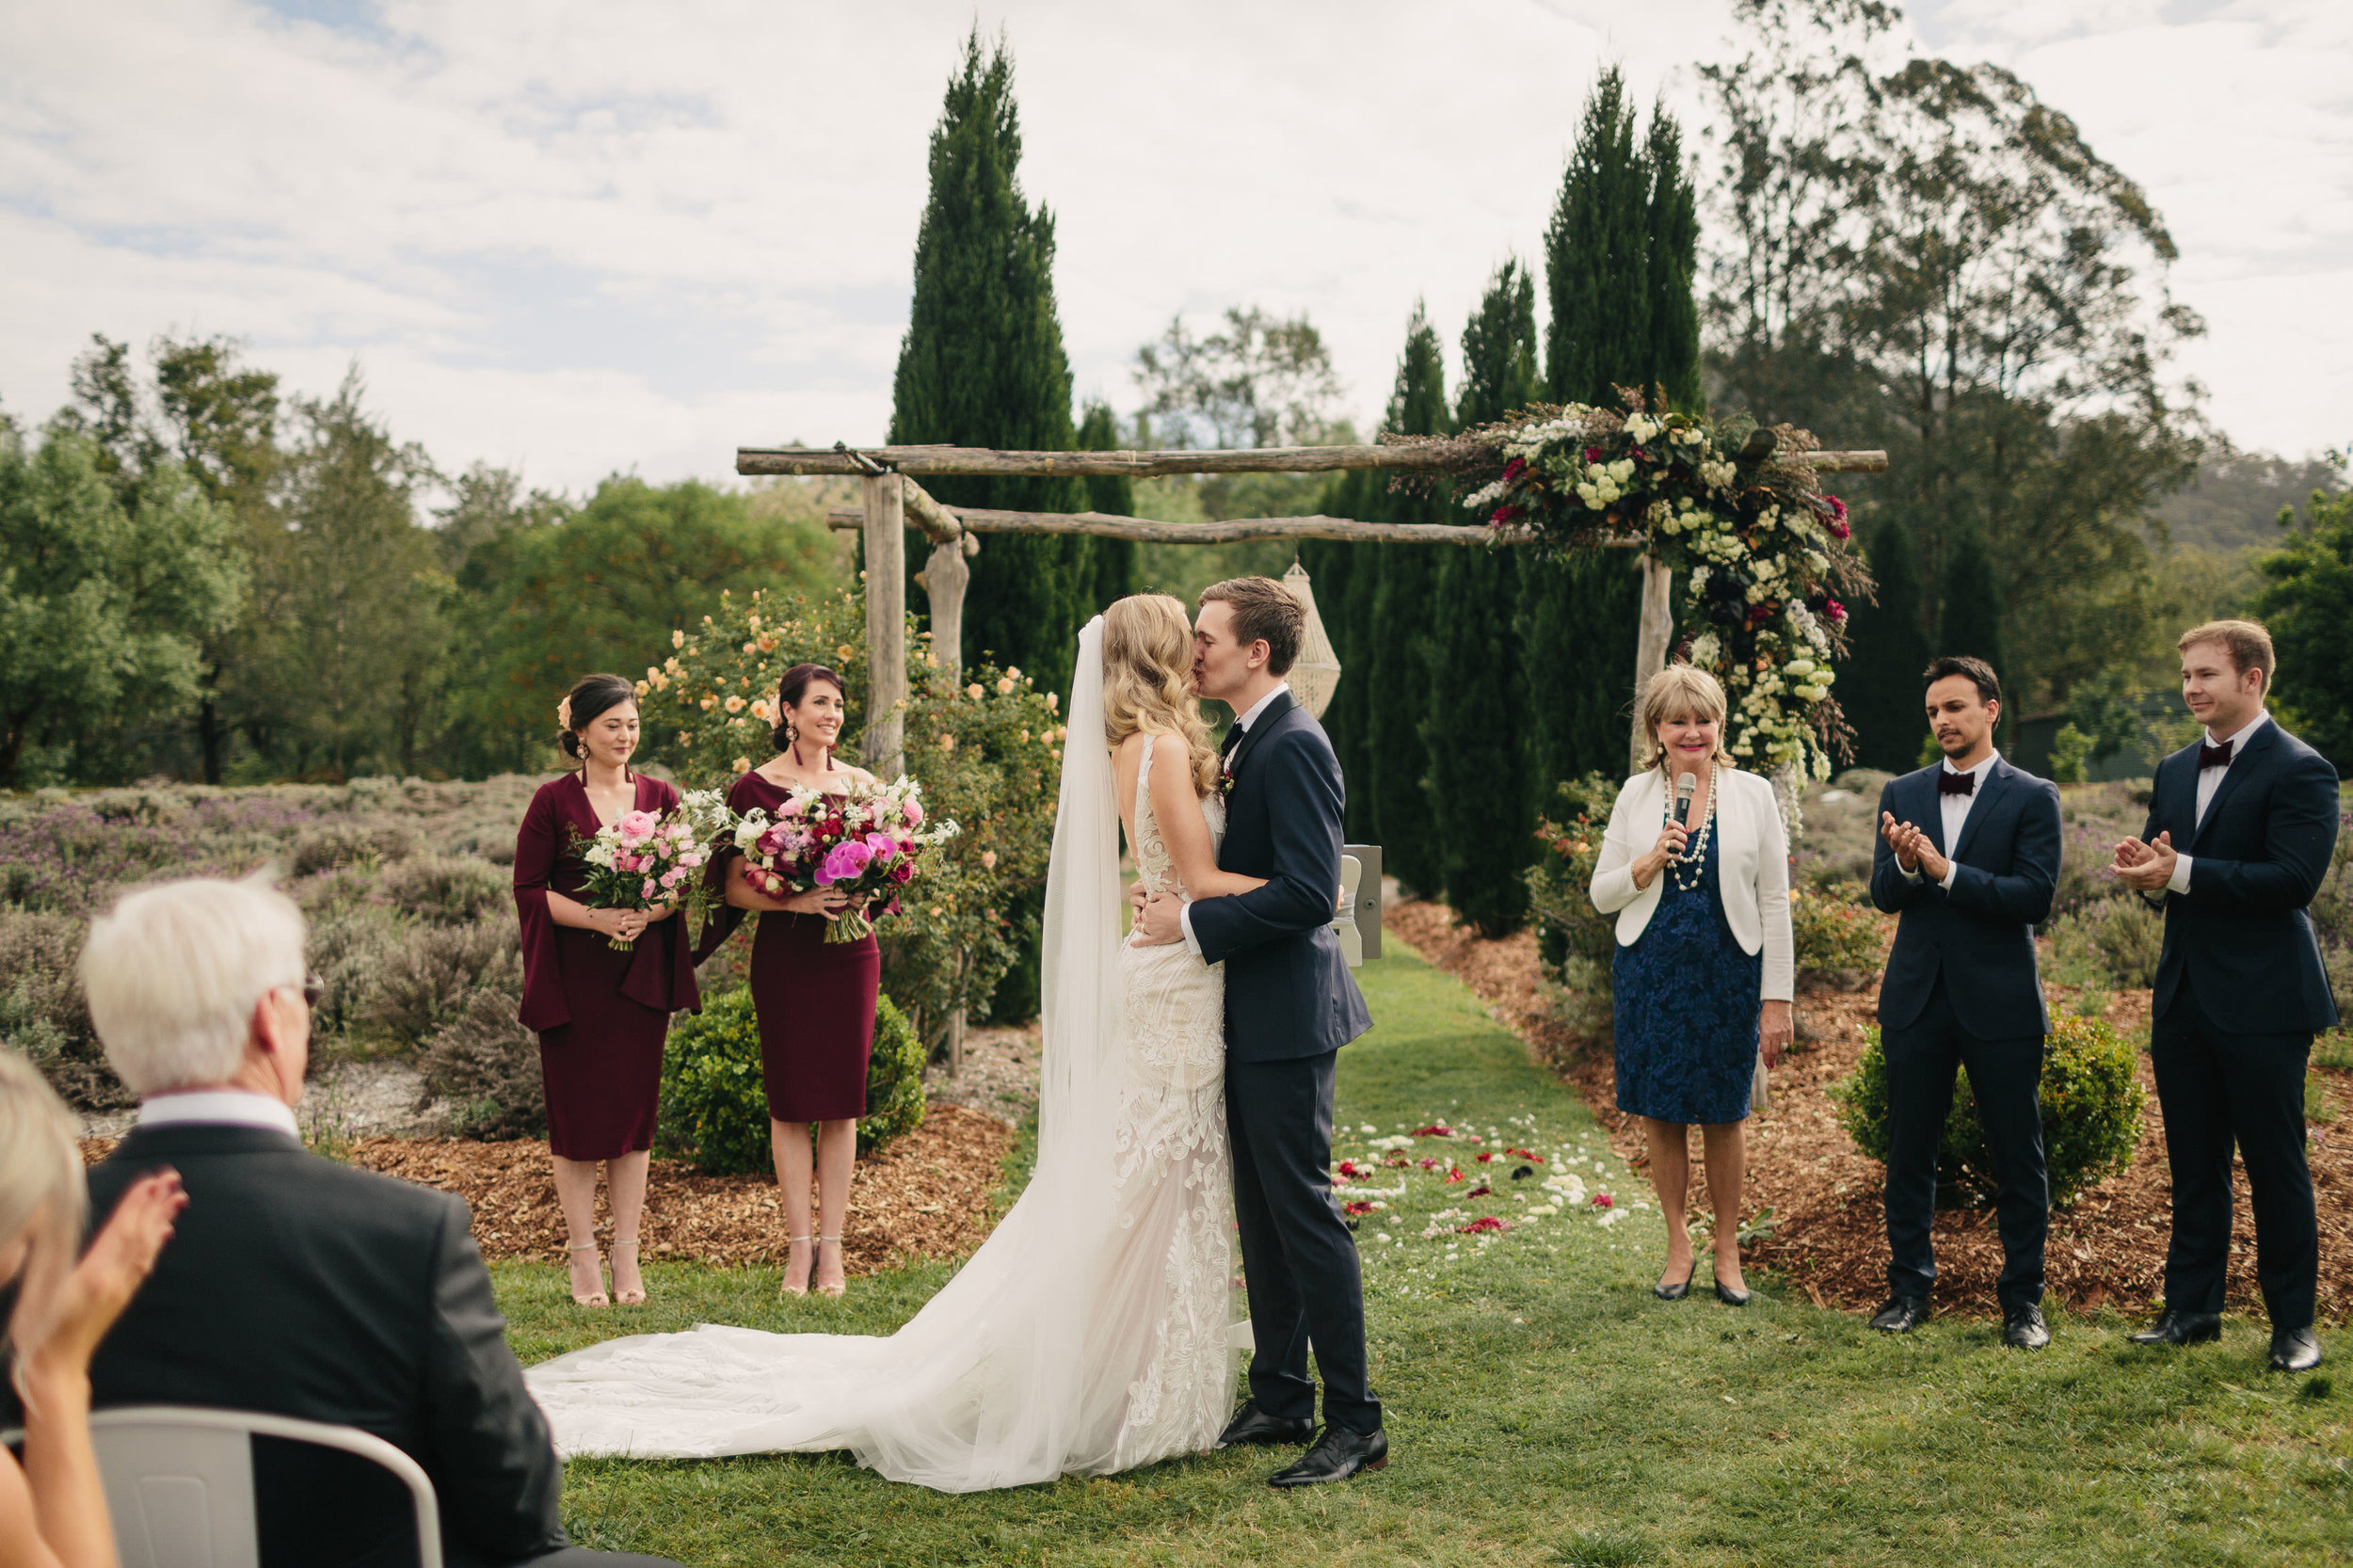 047_hunter_valley_wedding_photography_redleaf_paul_bamford_finchandoak.jpg